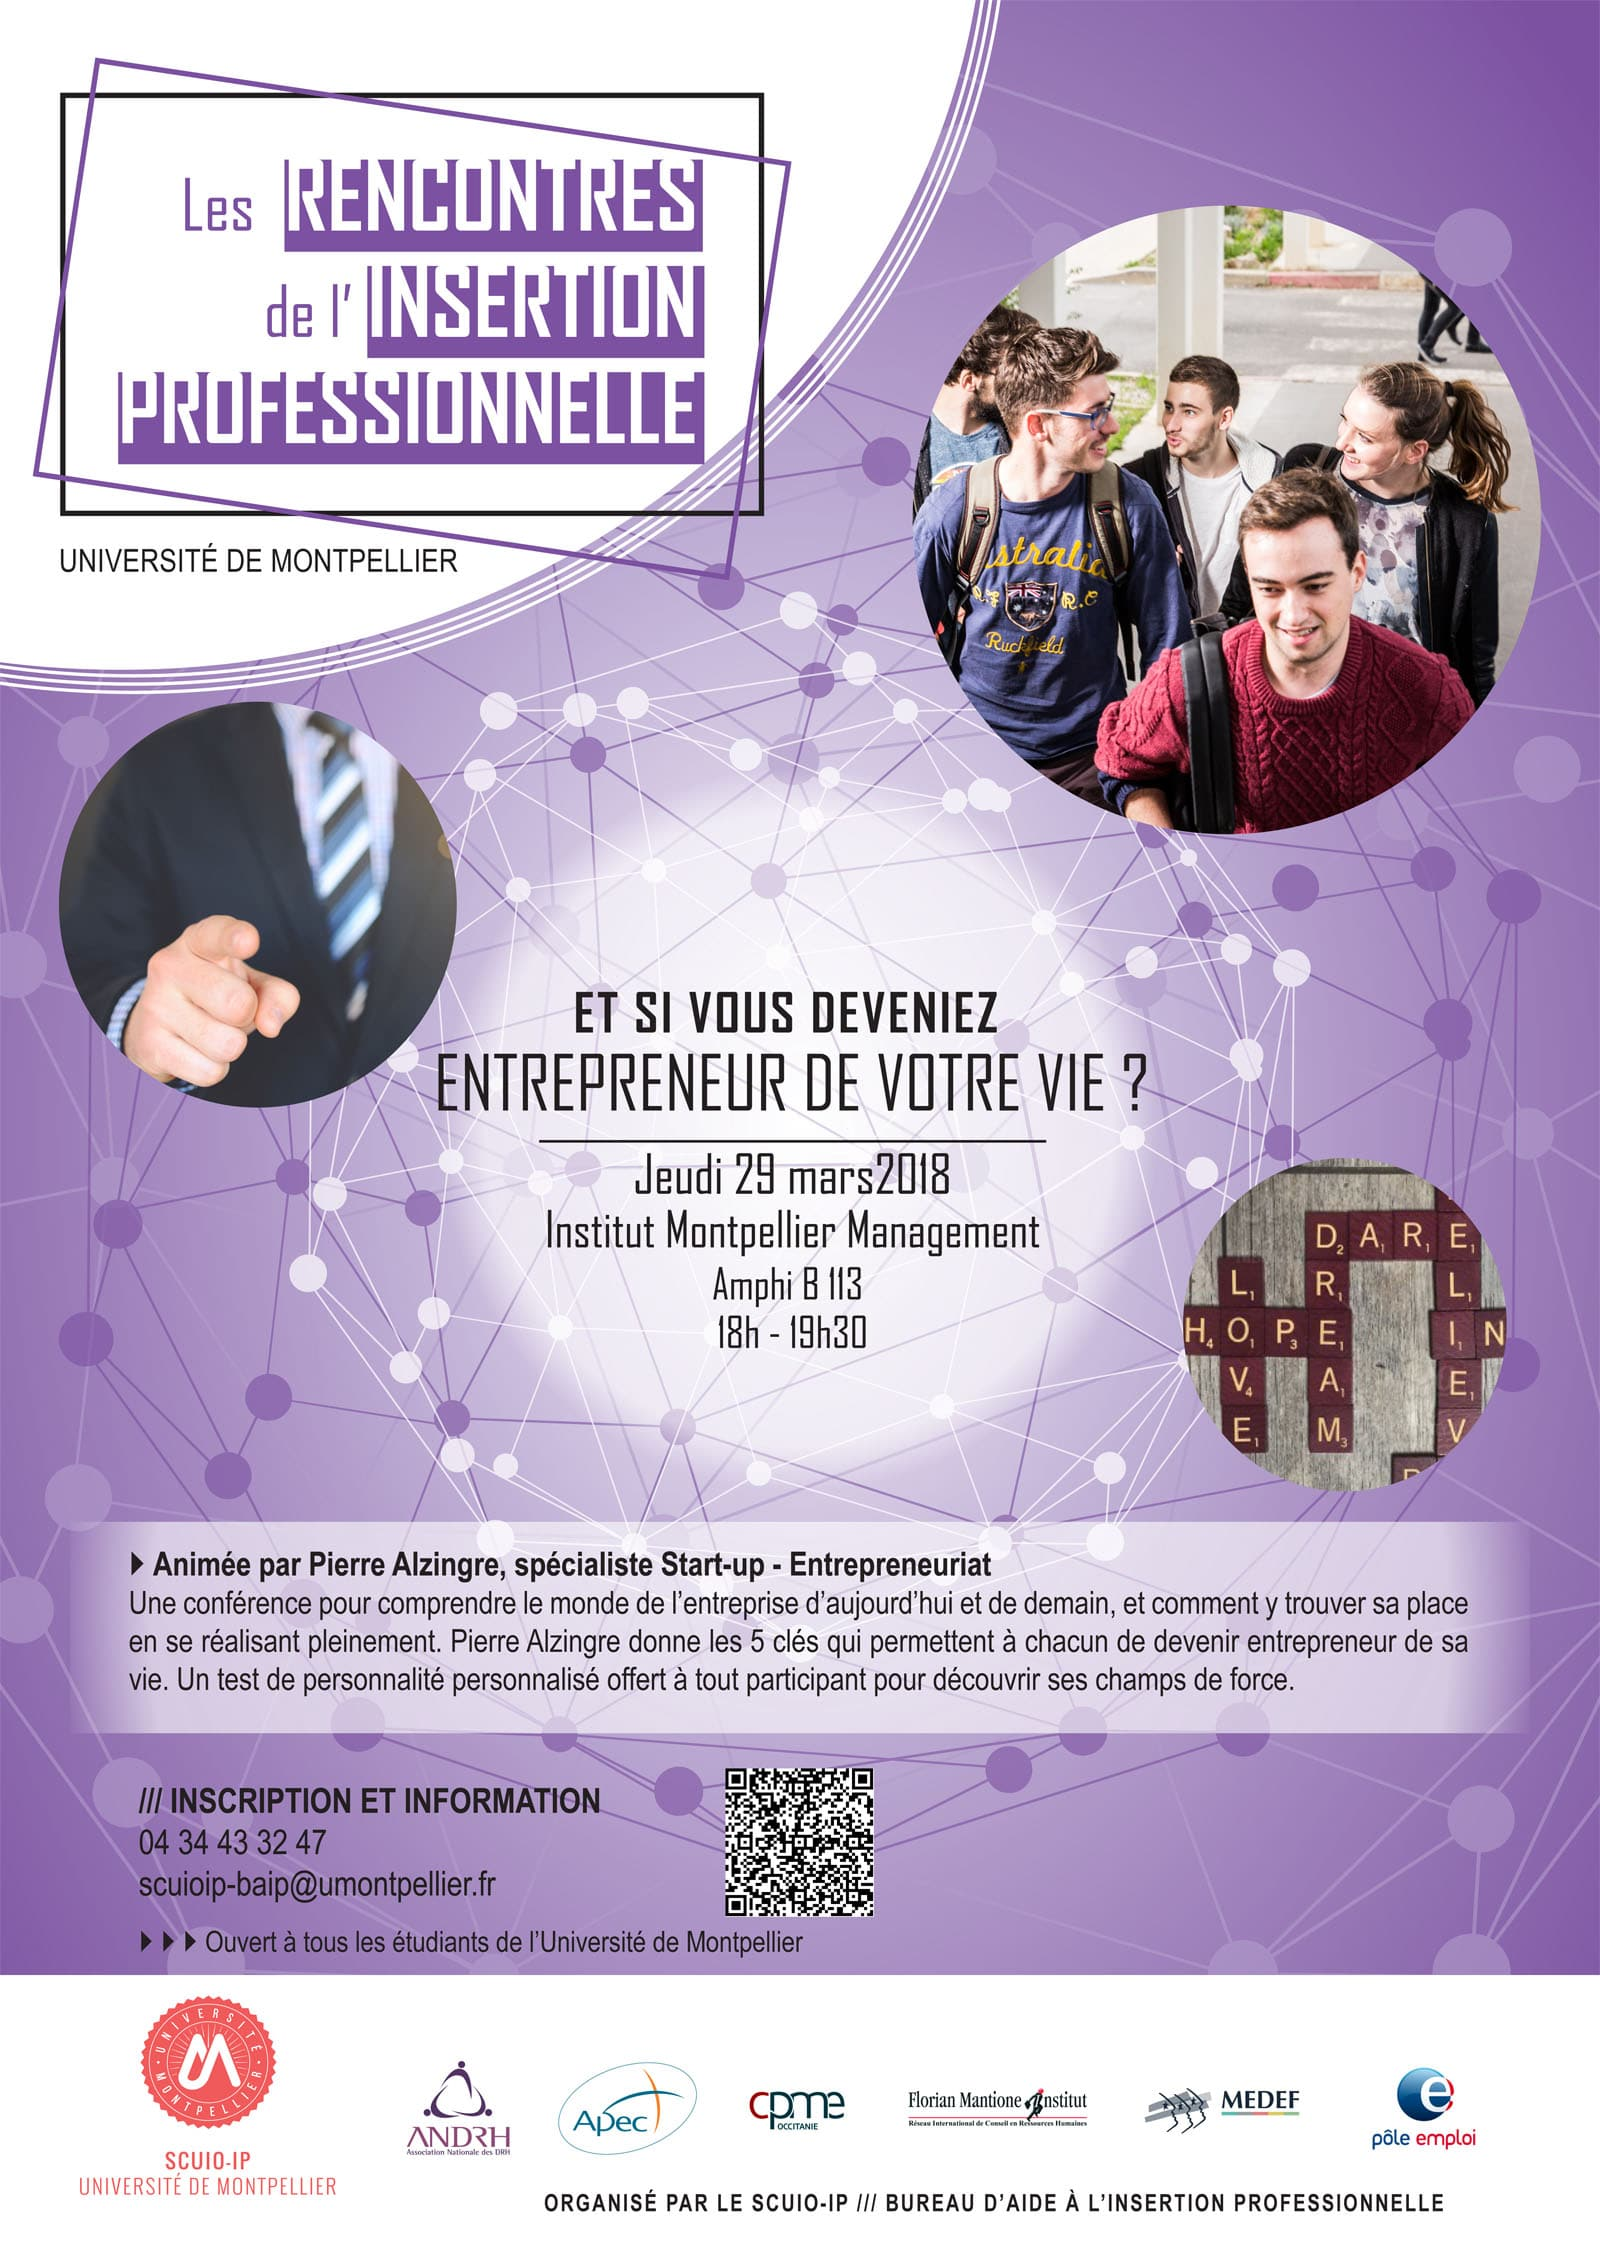 Chicago rencontres services Commentaires